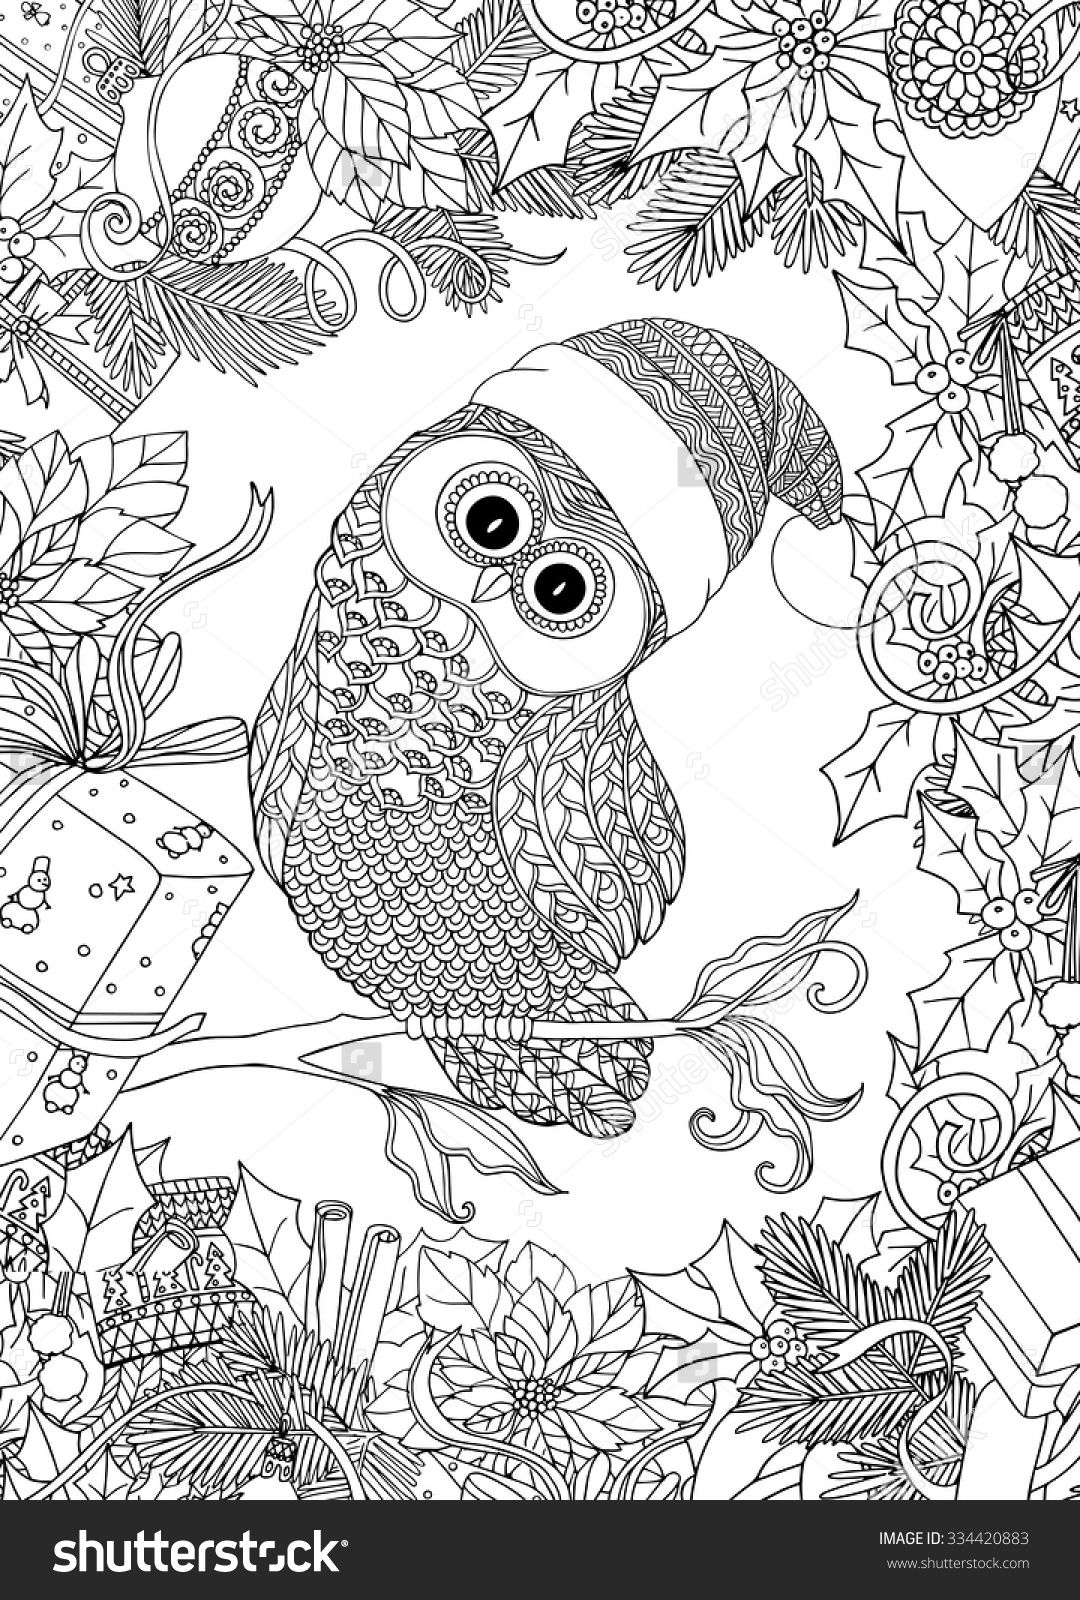 Christmas Coloring Pages To Print For Adults With Adult Google Search And Teen